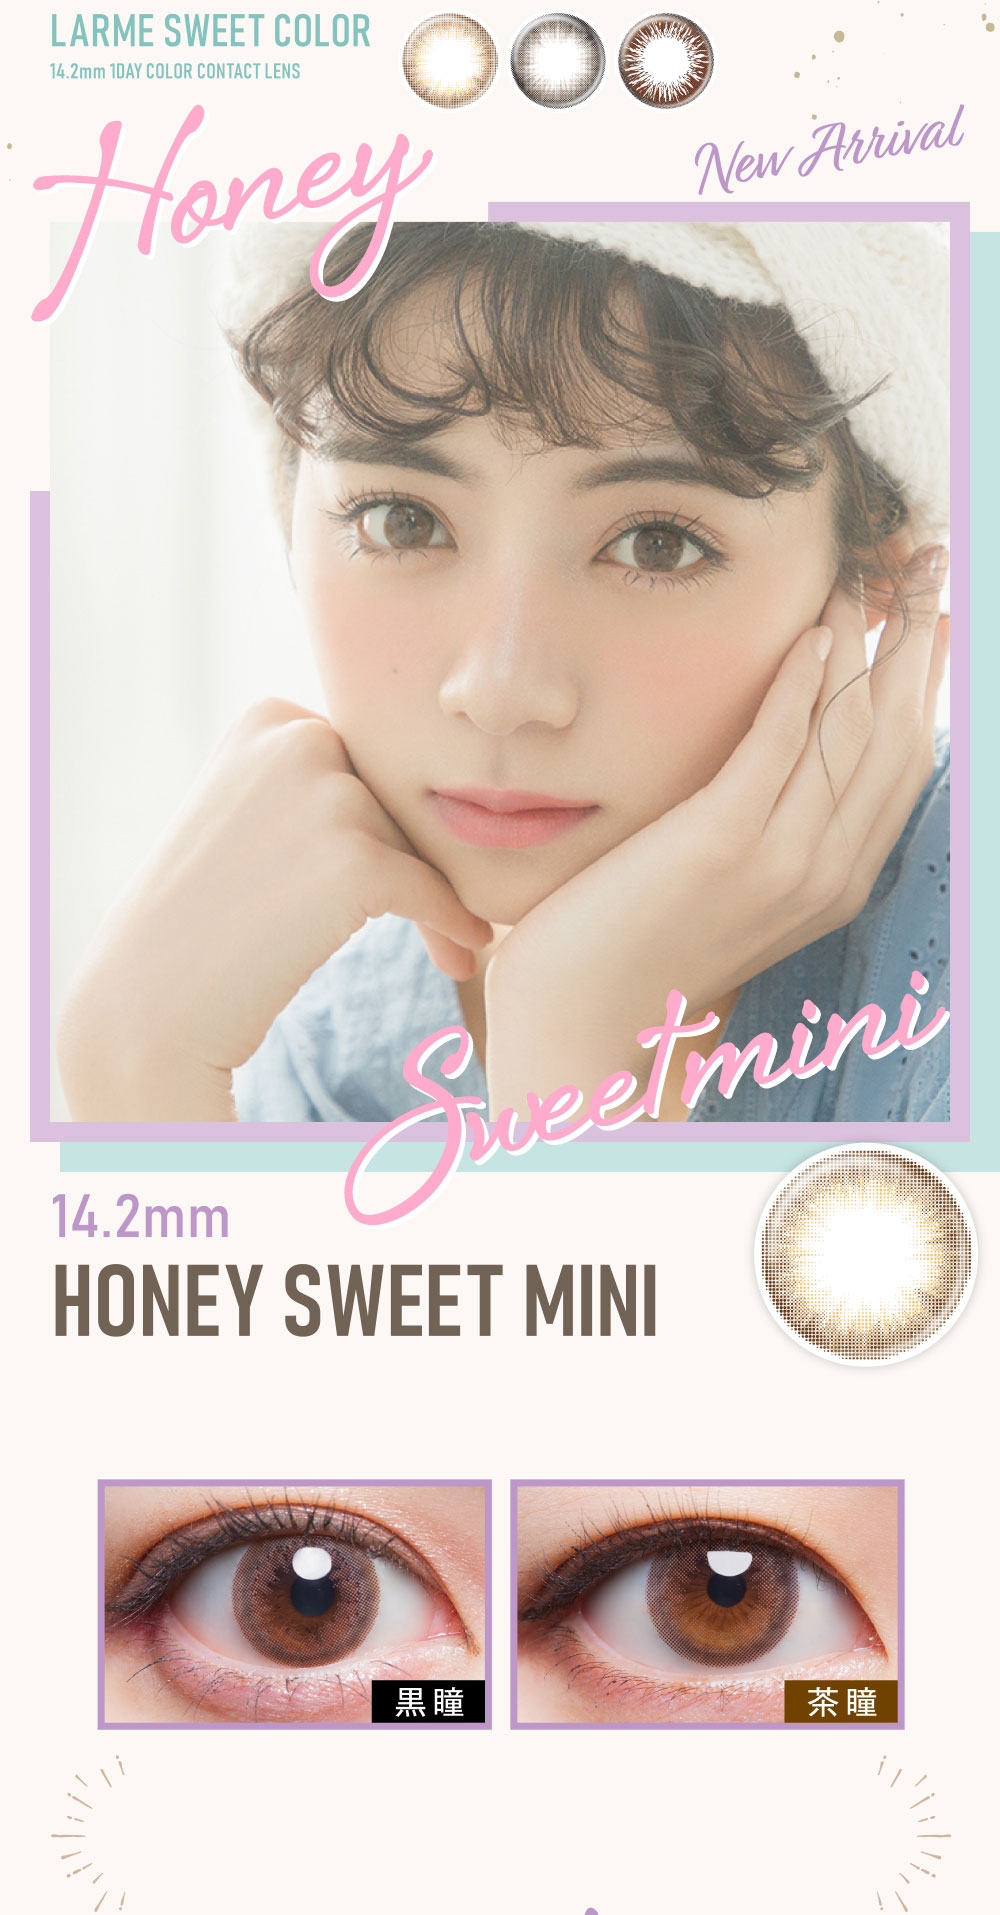 HONEY SWEET MINI